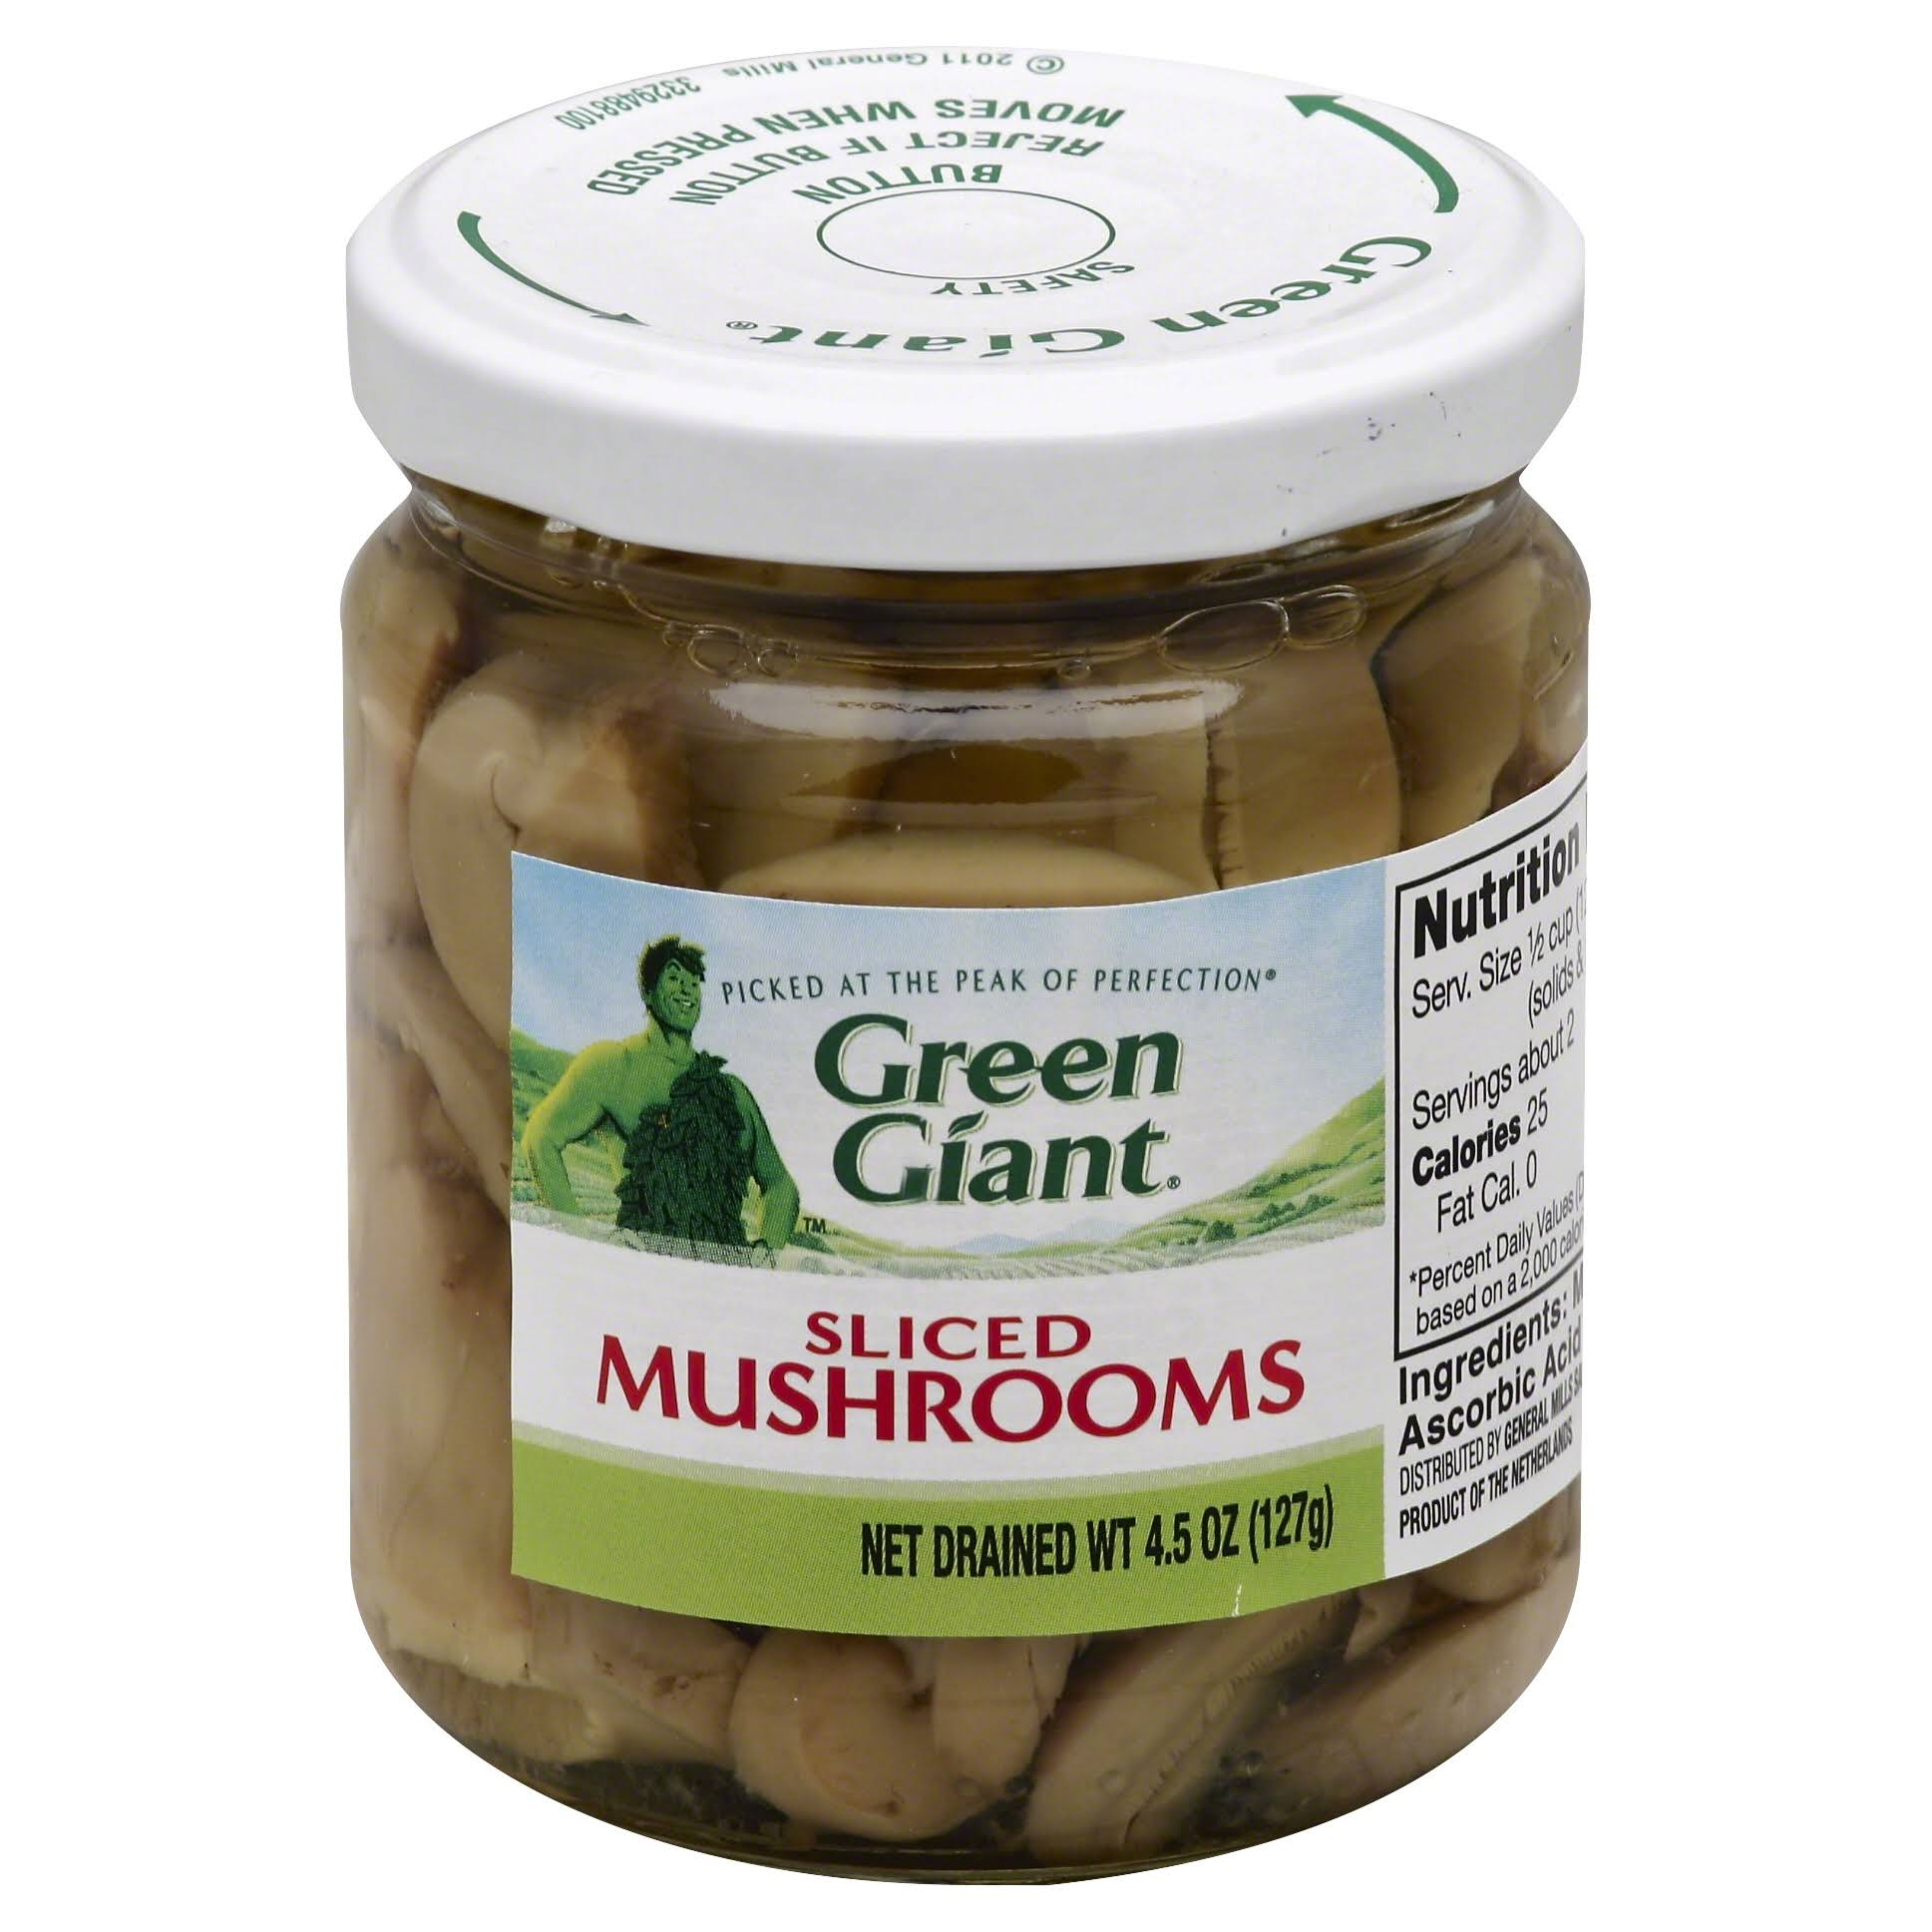 Green Giant Sliced Mushrooms - 4.5oz